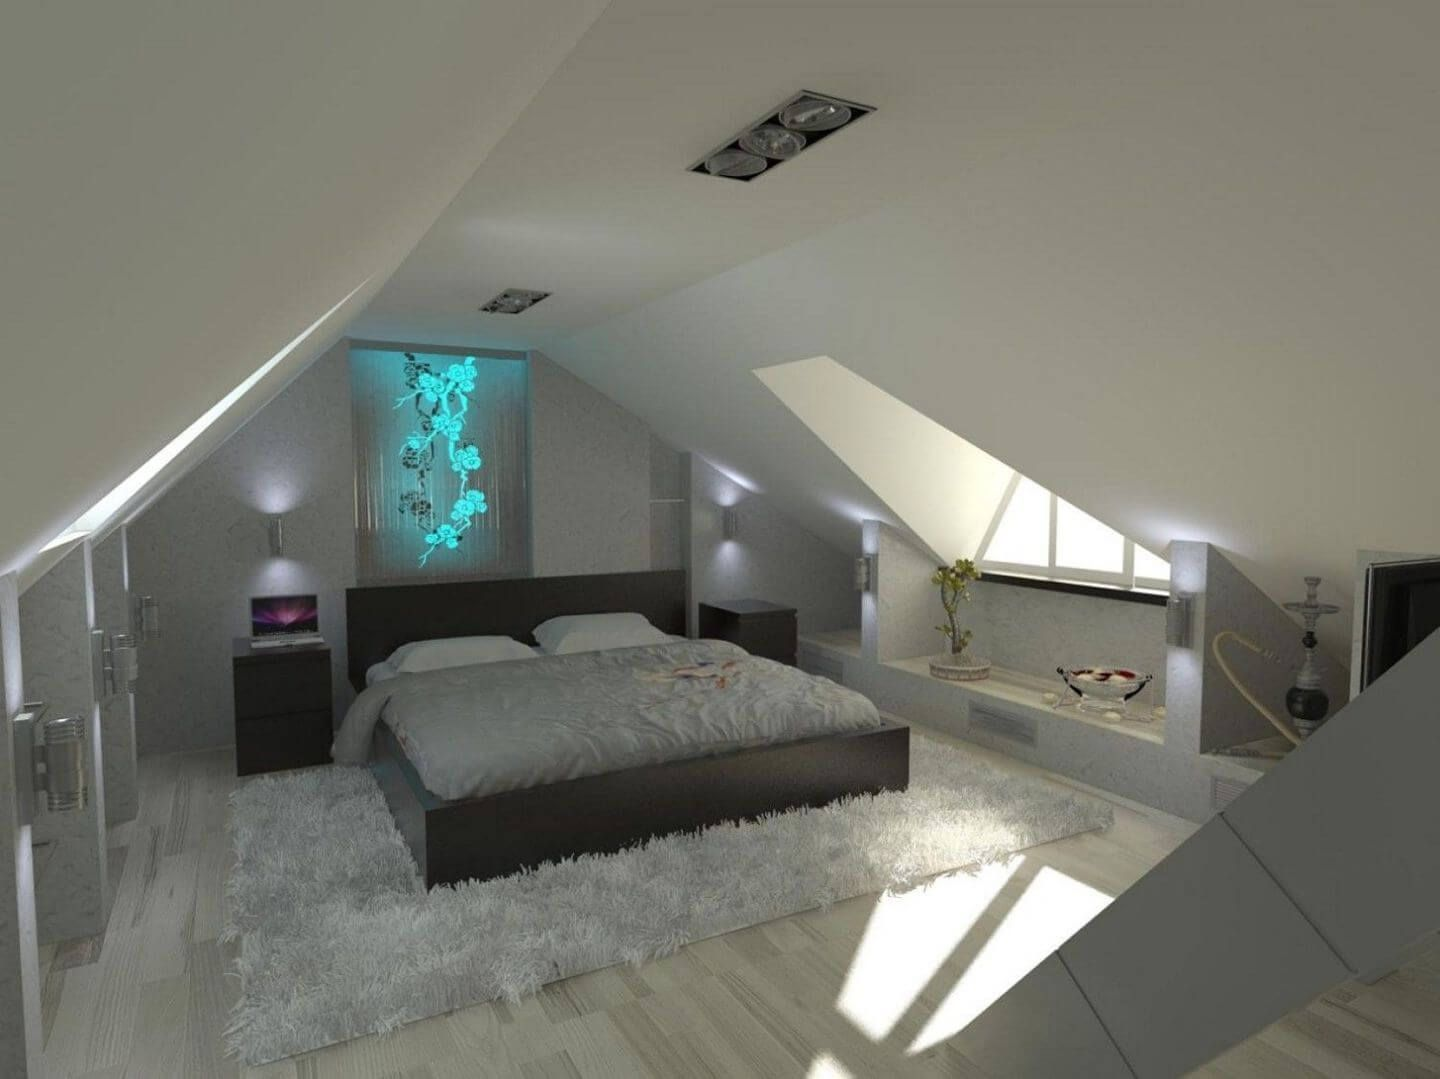 10 Attic Bedroom Ideas 2020 Creative And Awesome In 2020 Attic